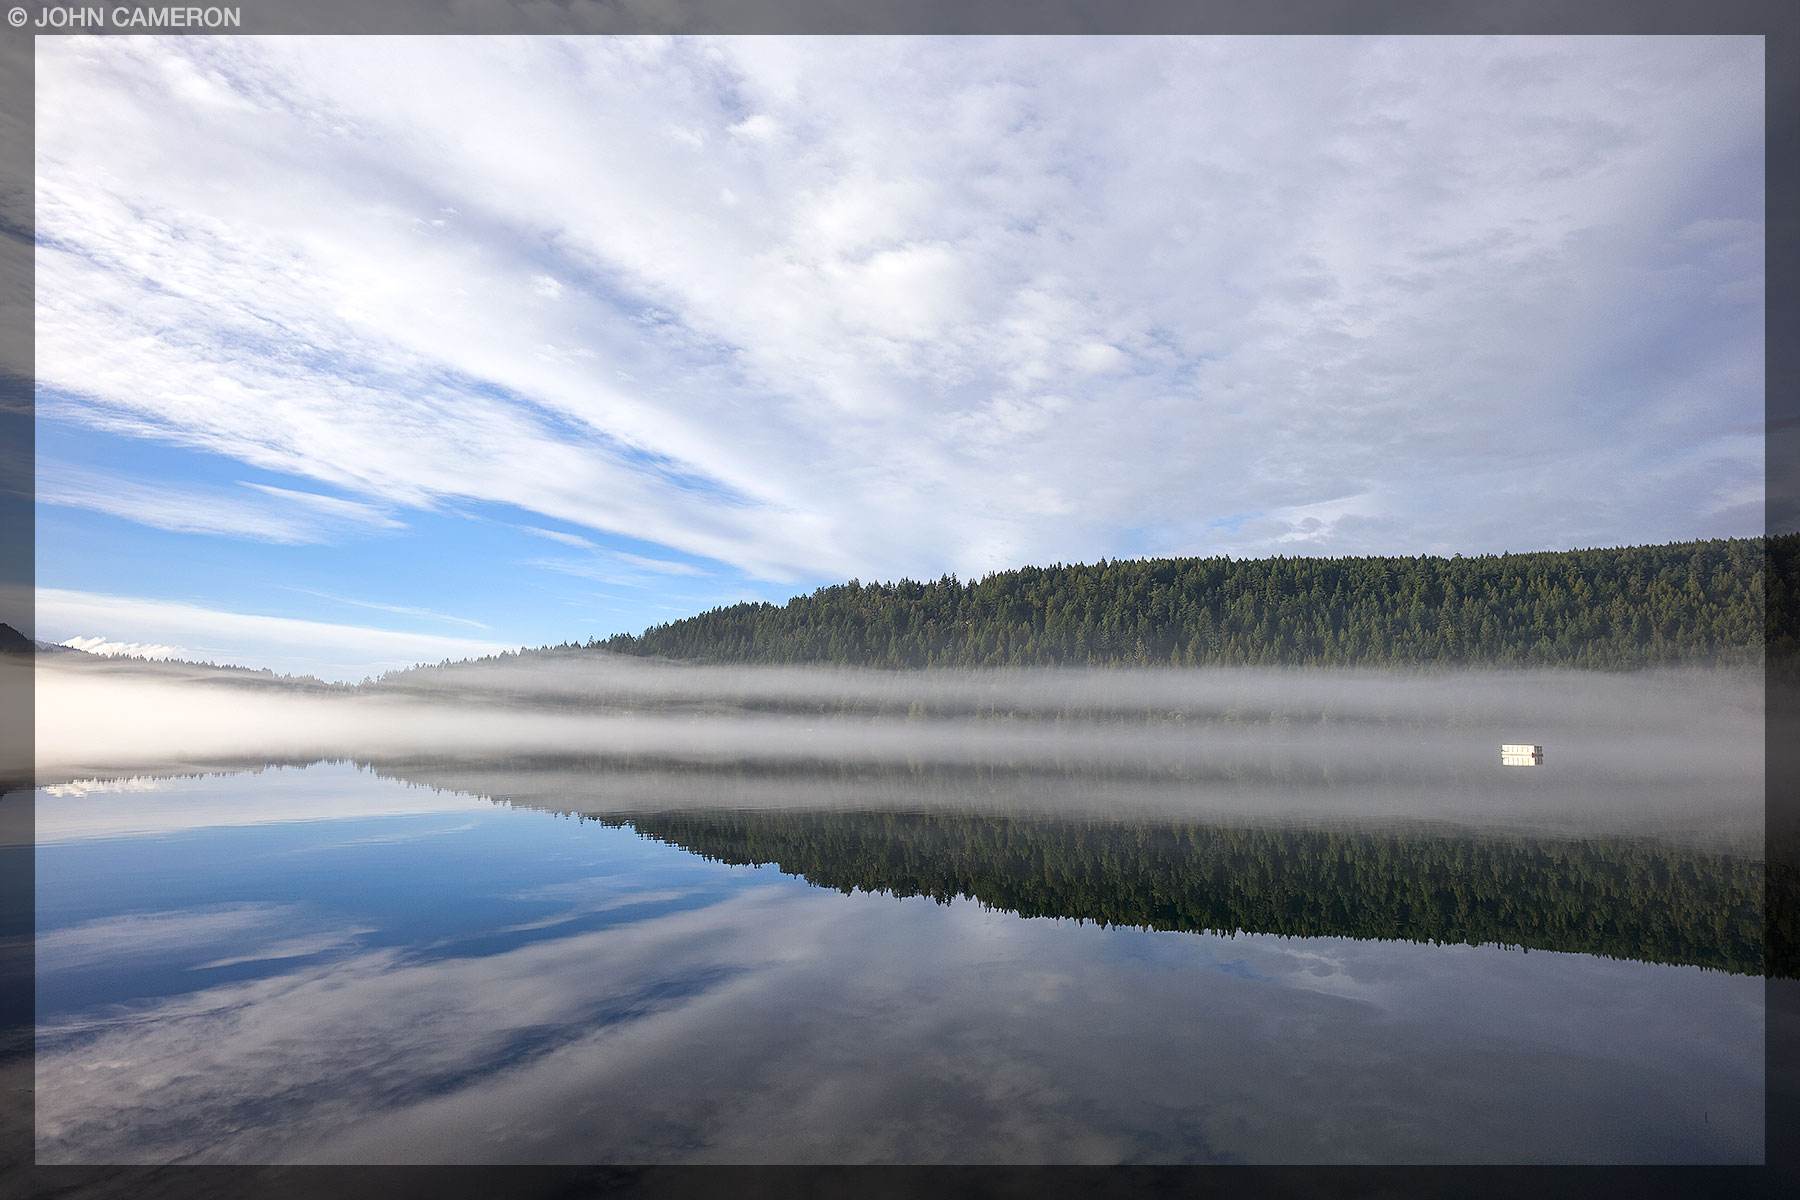 St. Mary Lake, Salt Spring Island